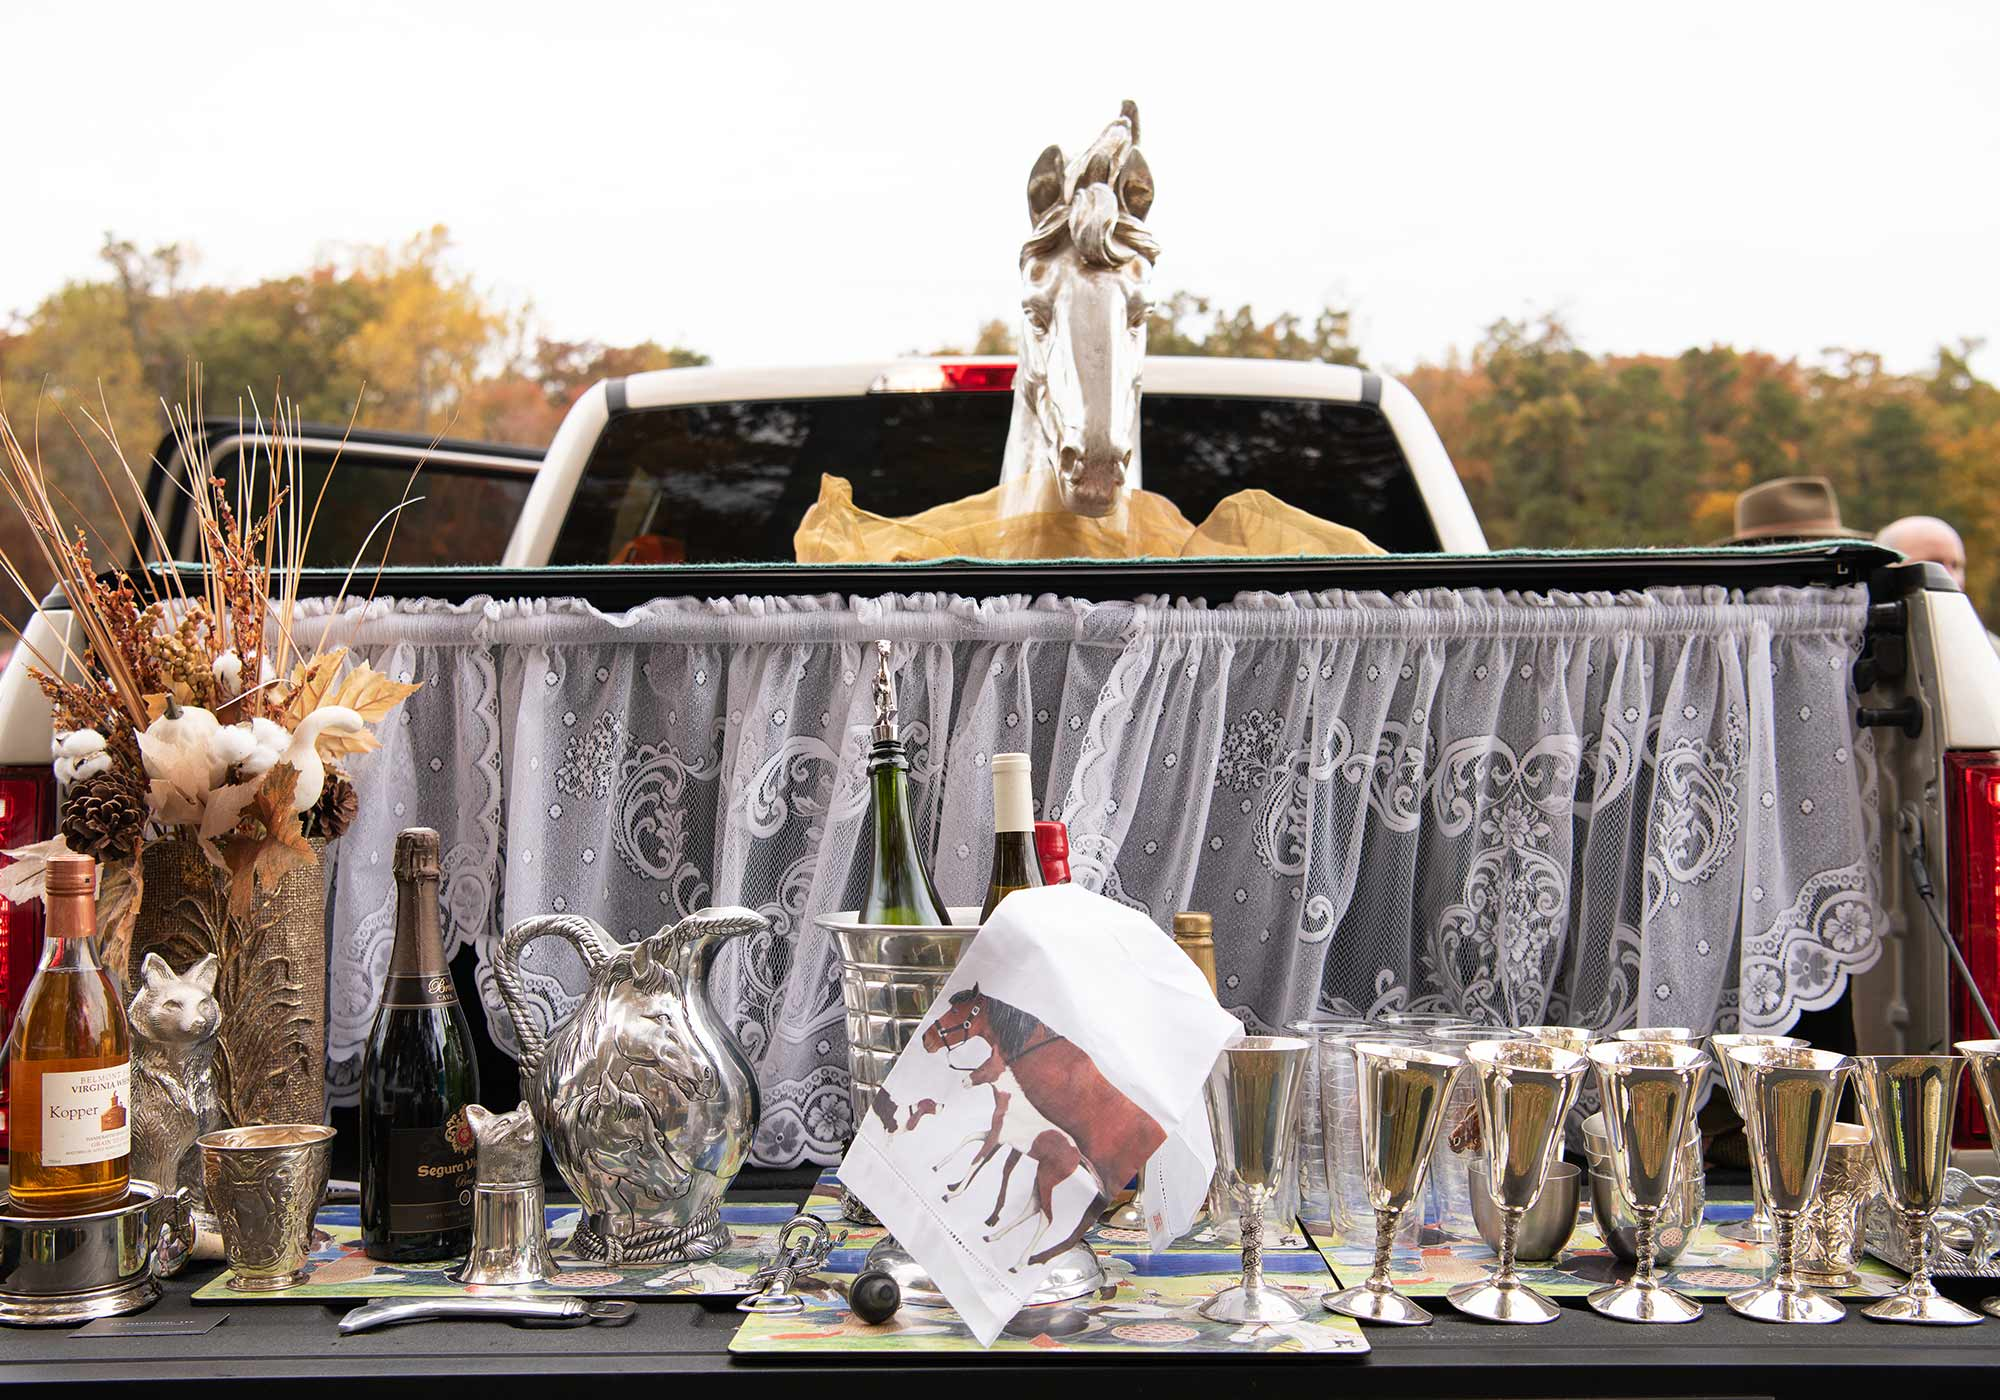 Montpelier Hunt Races, Image by © RL Johnson for Wine & Country Life